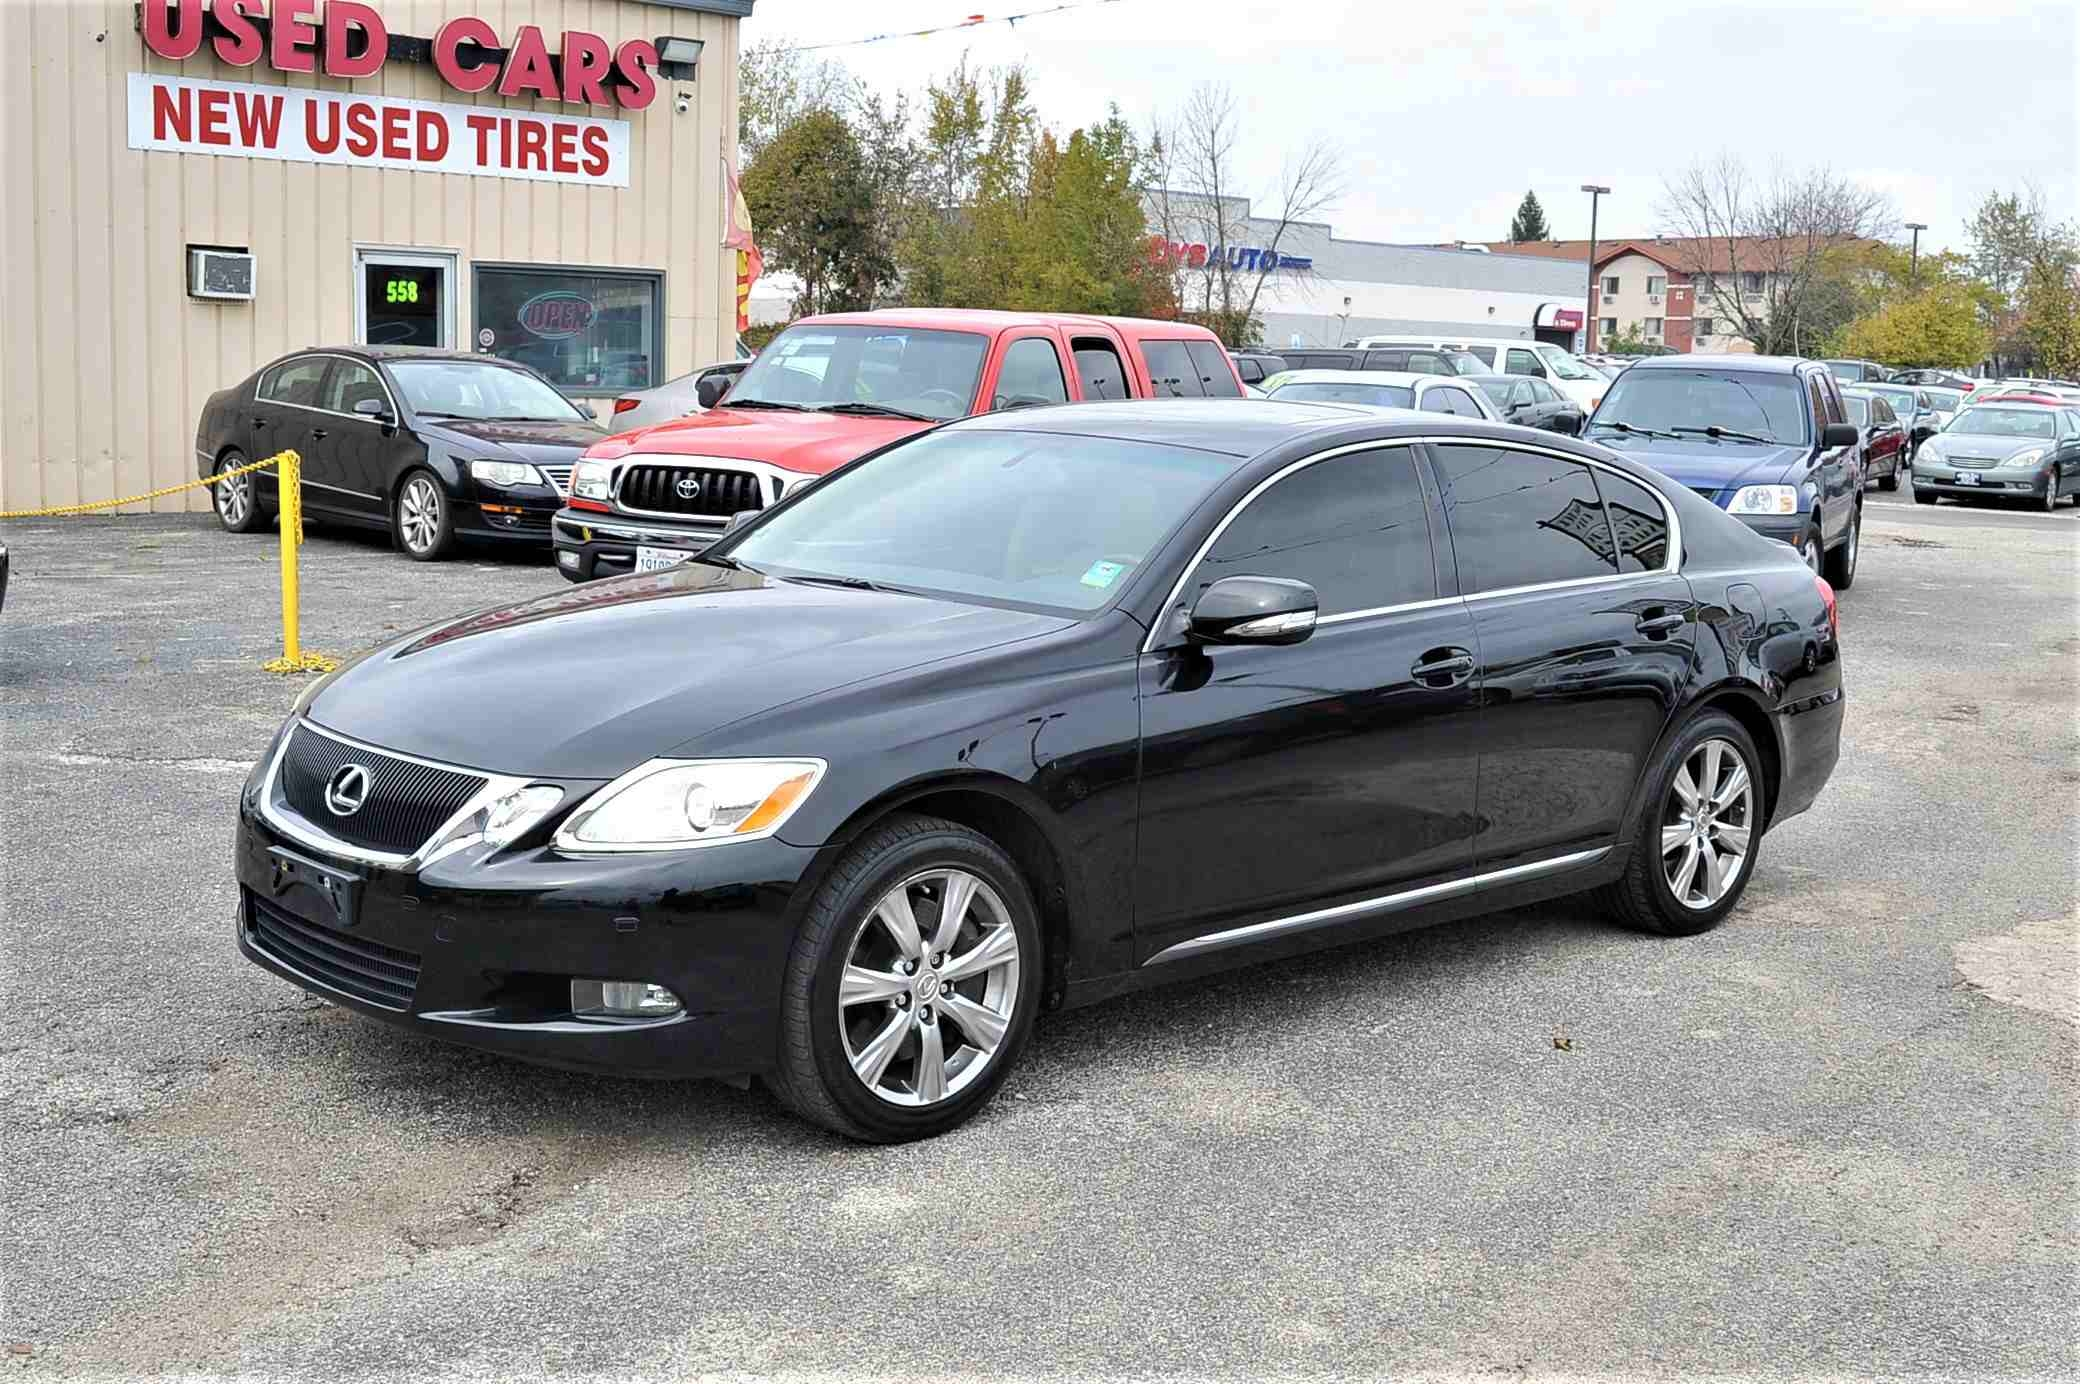 2008 Lexus GS350 Navigation Black AWD Sedan Sale Antioch Zion Waukegan Lake County Illinois